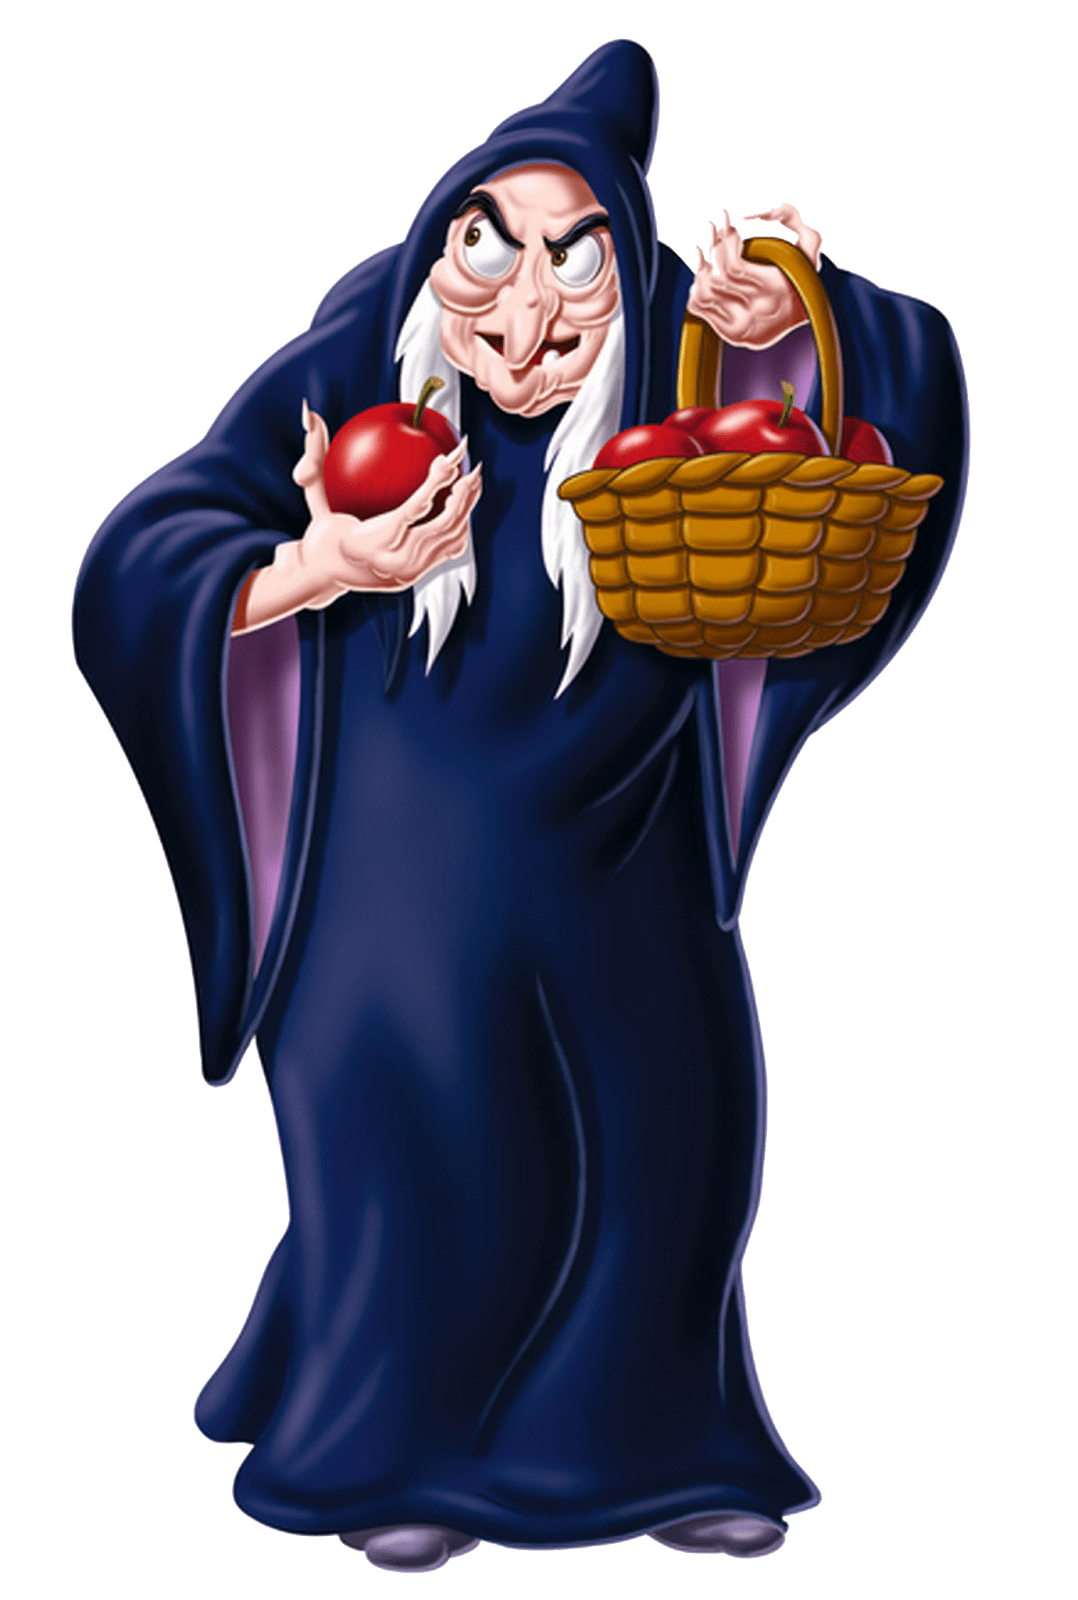 Witch clipart old witch. Snow white woman transparent